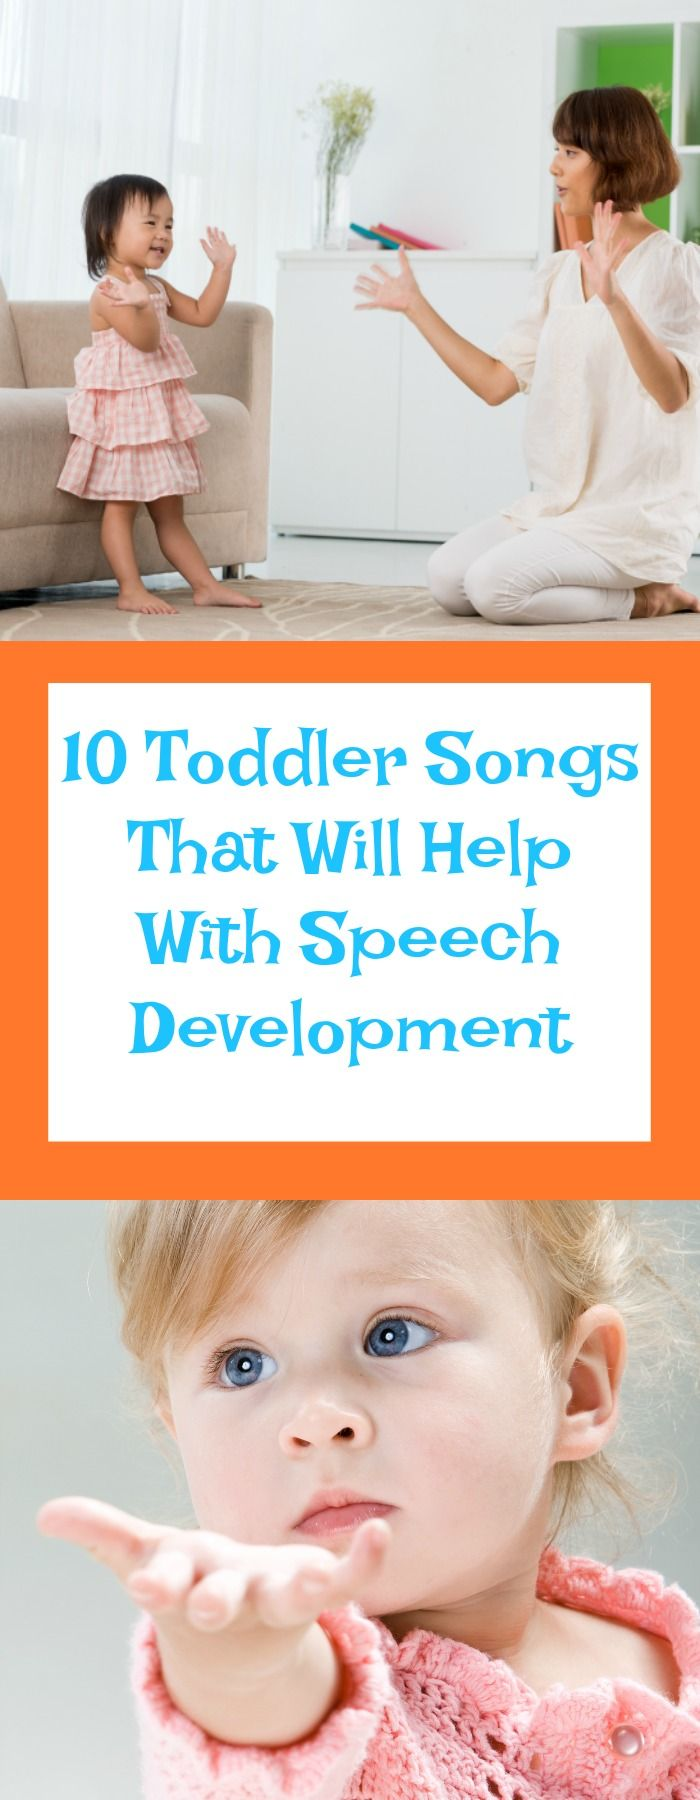 10 MORE Toddler Songs to Help with Language Development - The Organized Mom